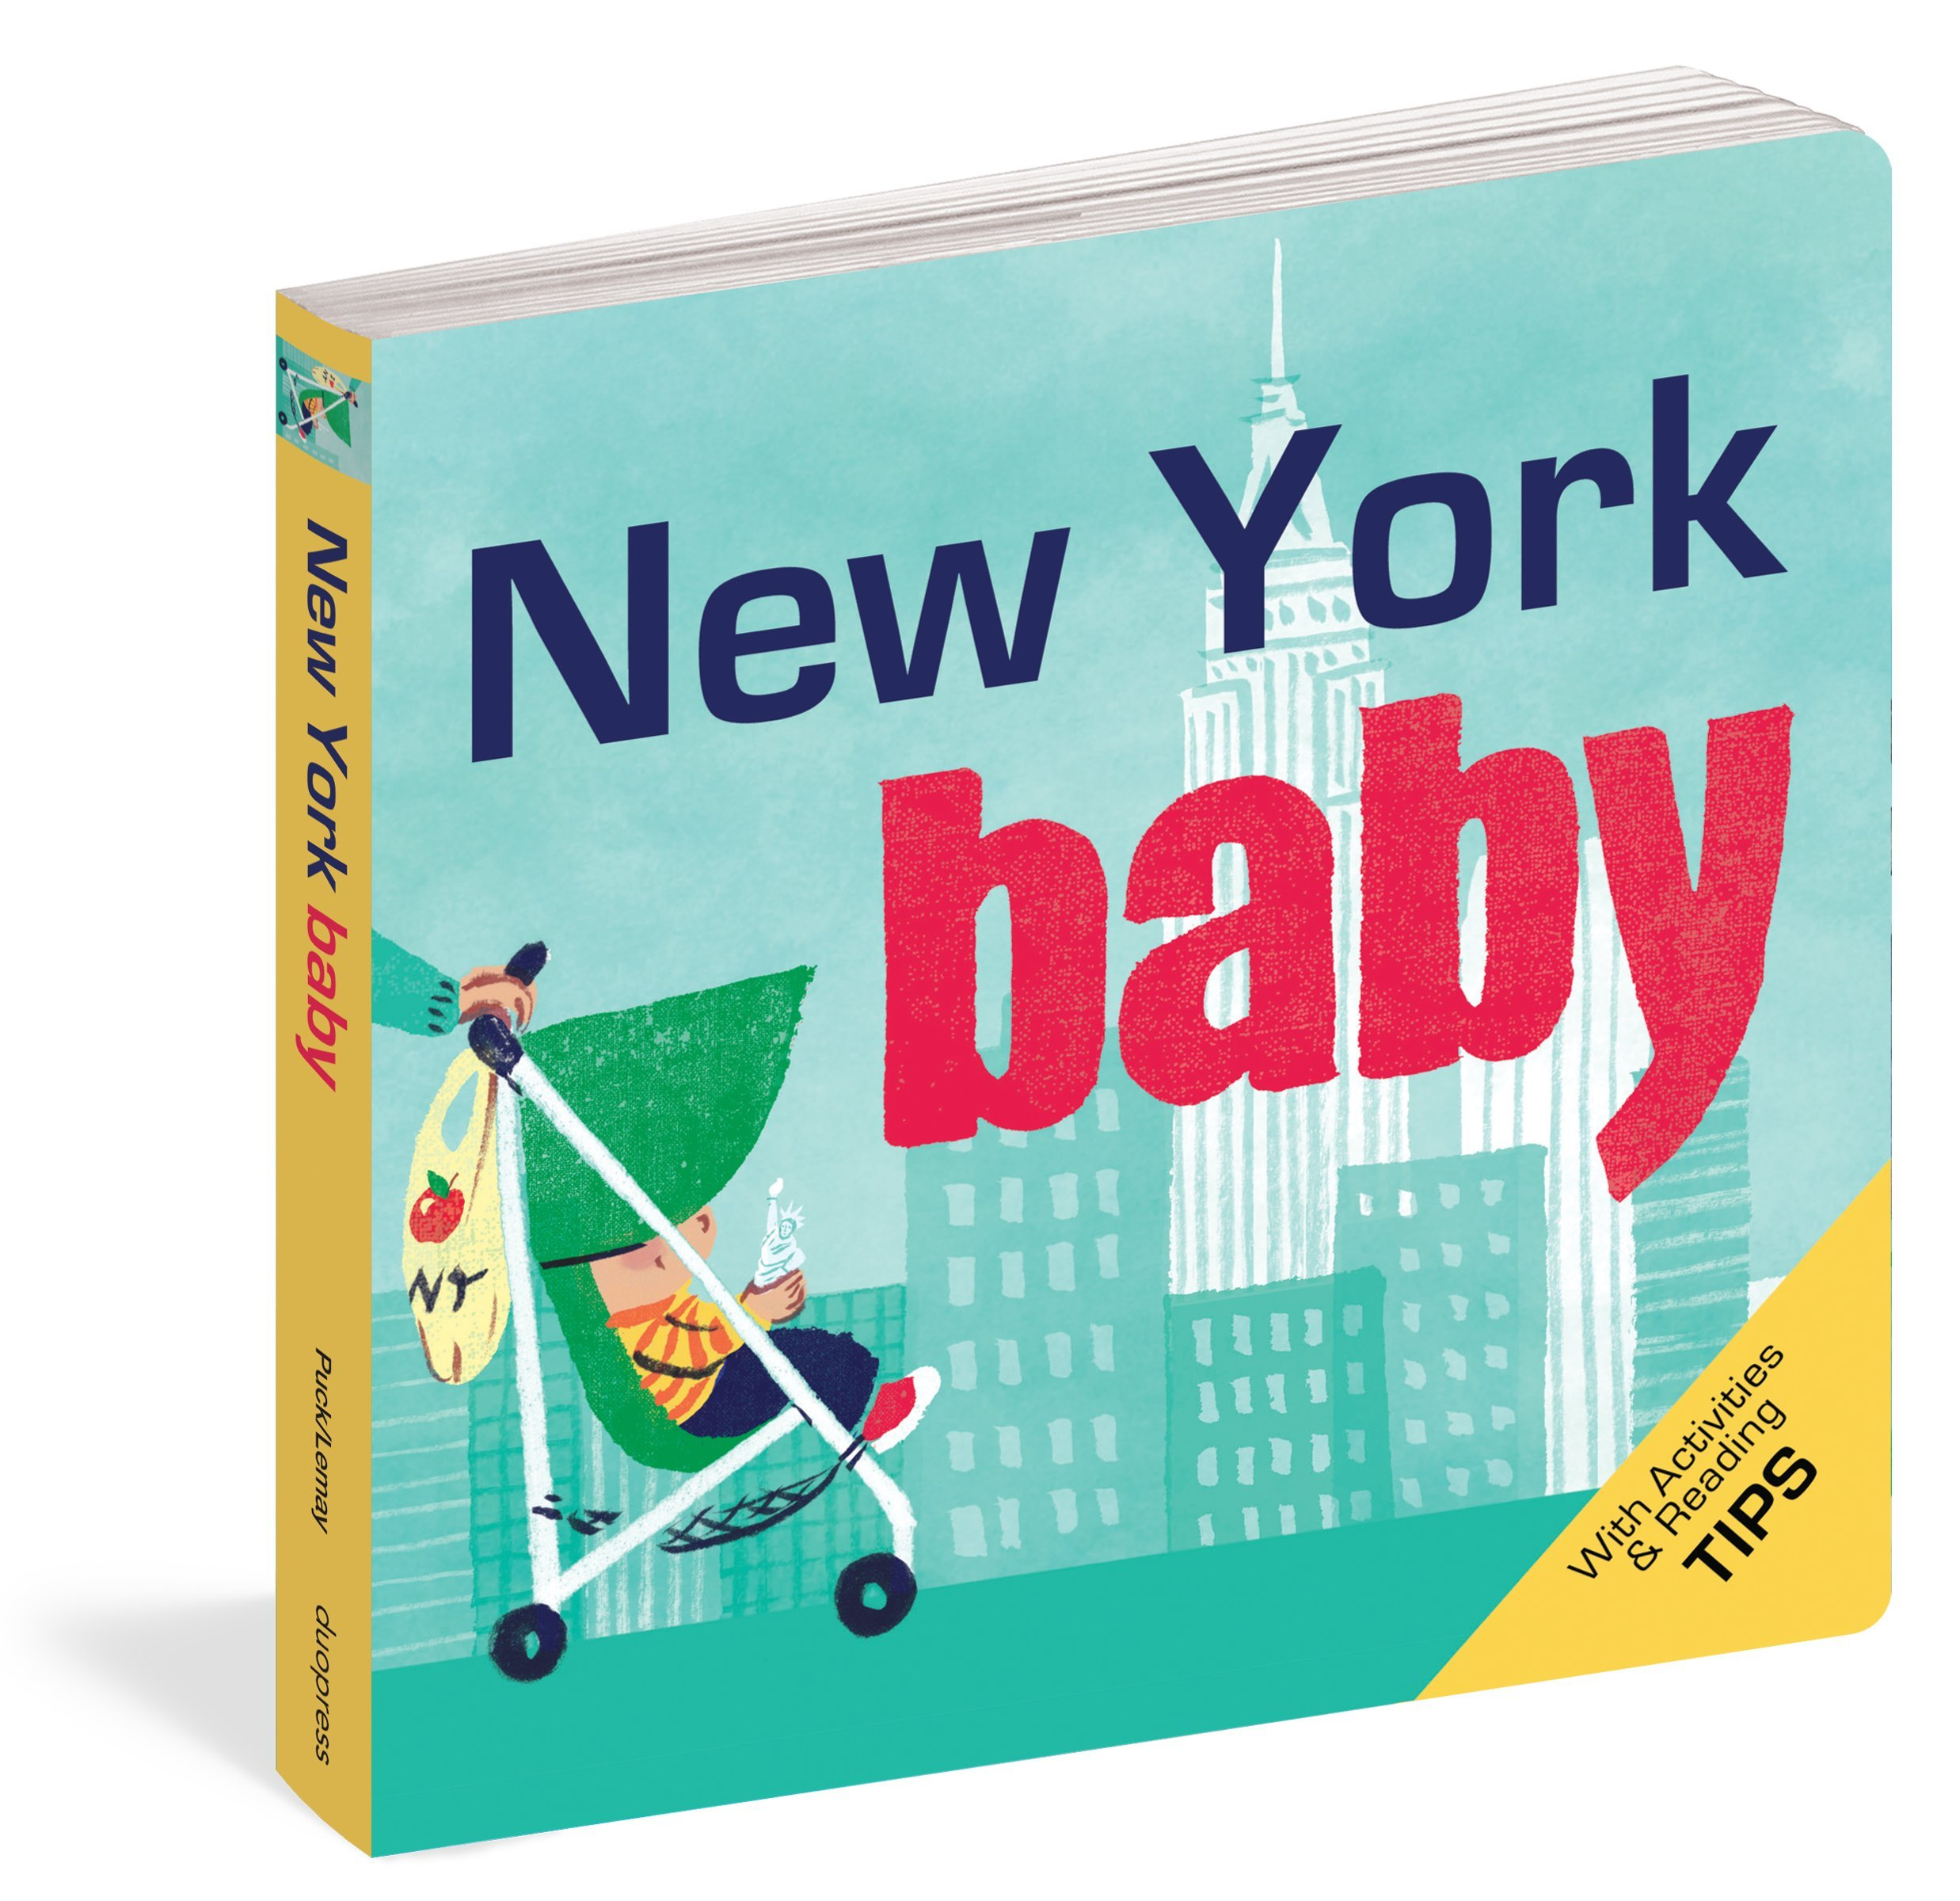 Amazon.com: New York: Books: New York City, Niagara Falls ...